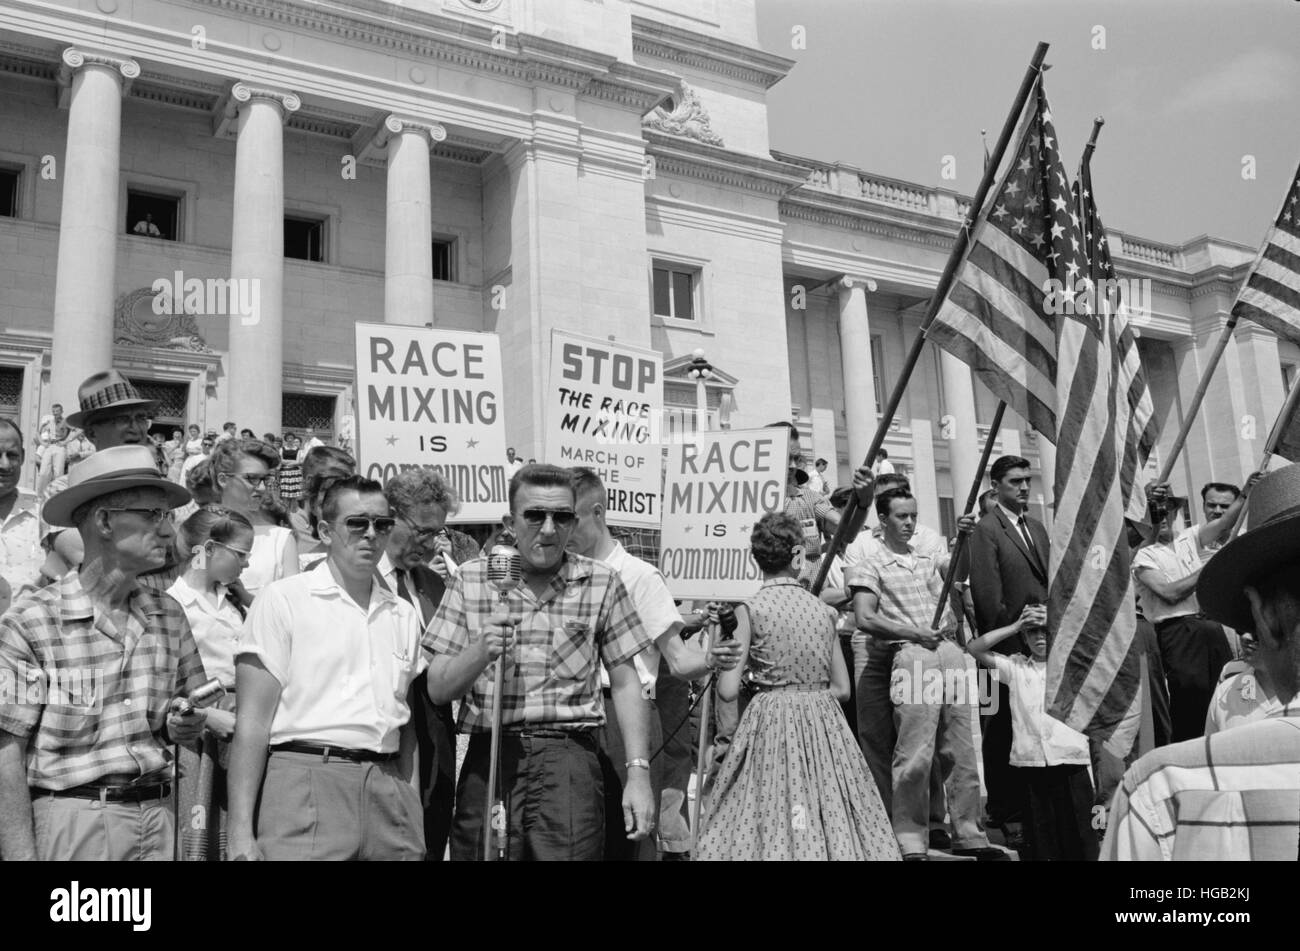 A group of people rally in Washington, D.C., protesting the admission of the Little Rock Nine, 1959. - Stock Image